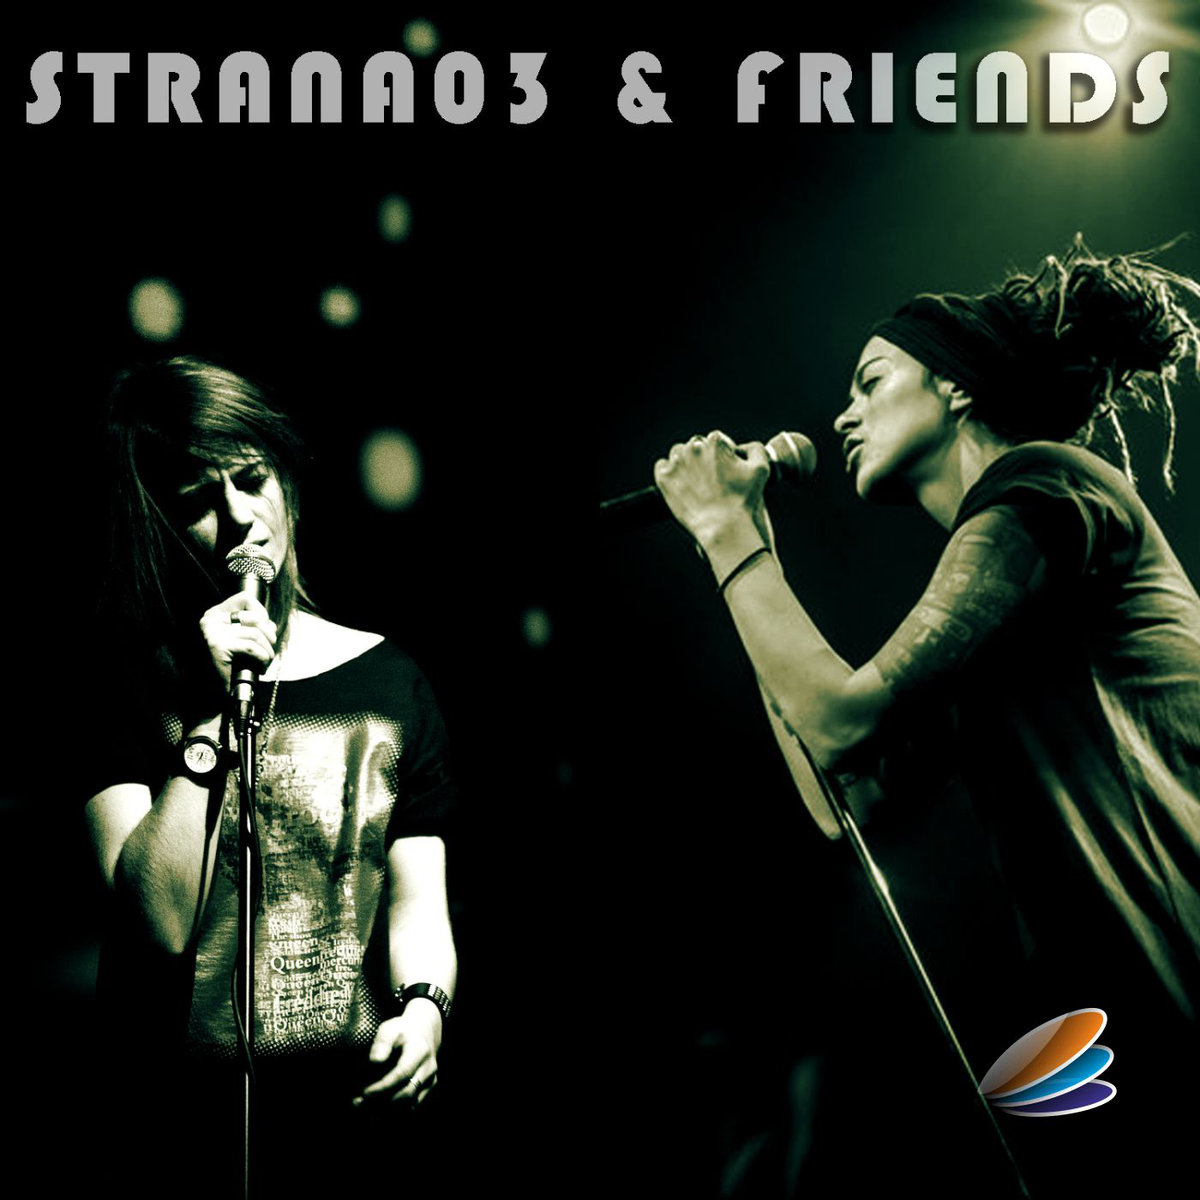 Strana 03 - And Friends